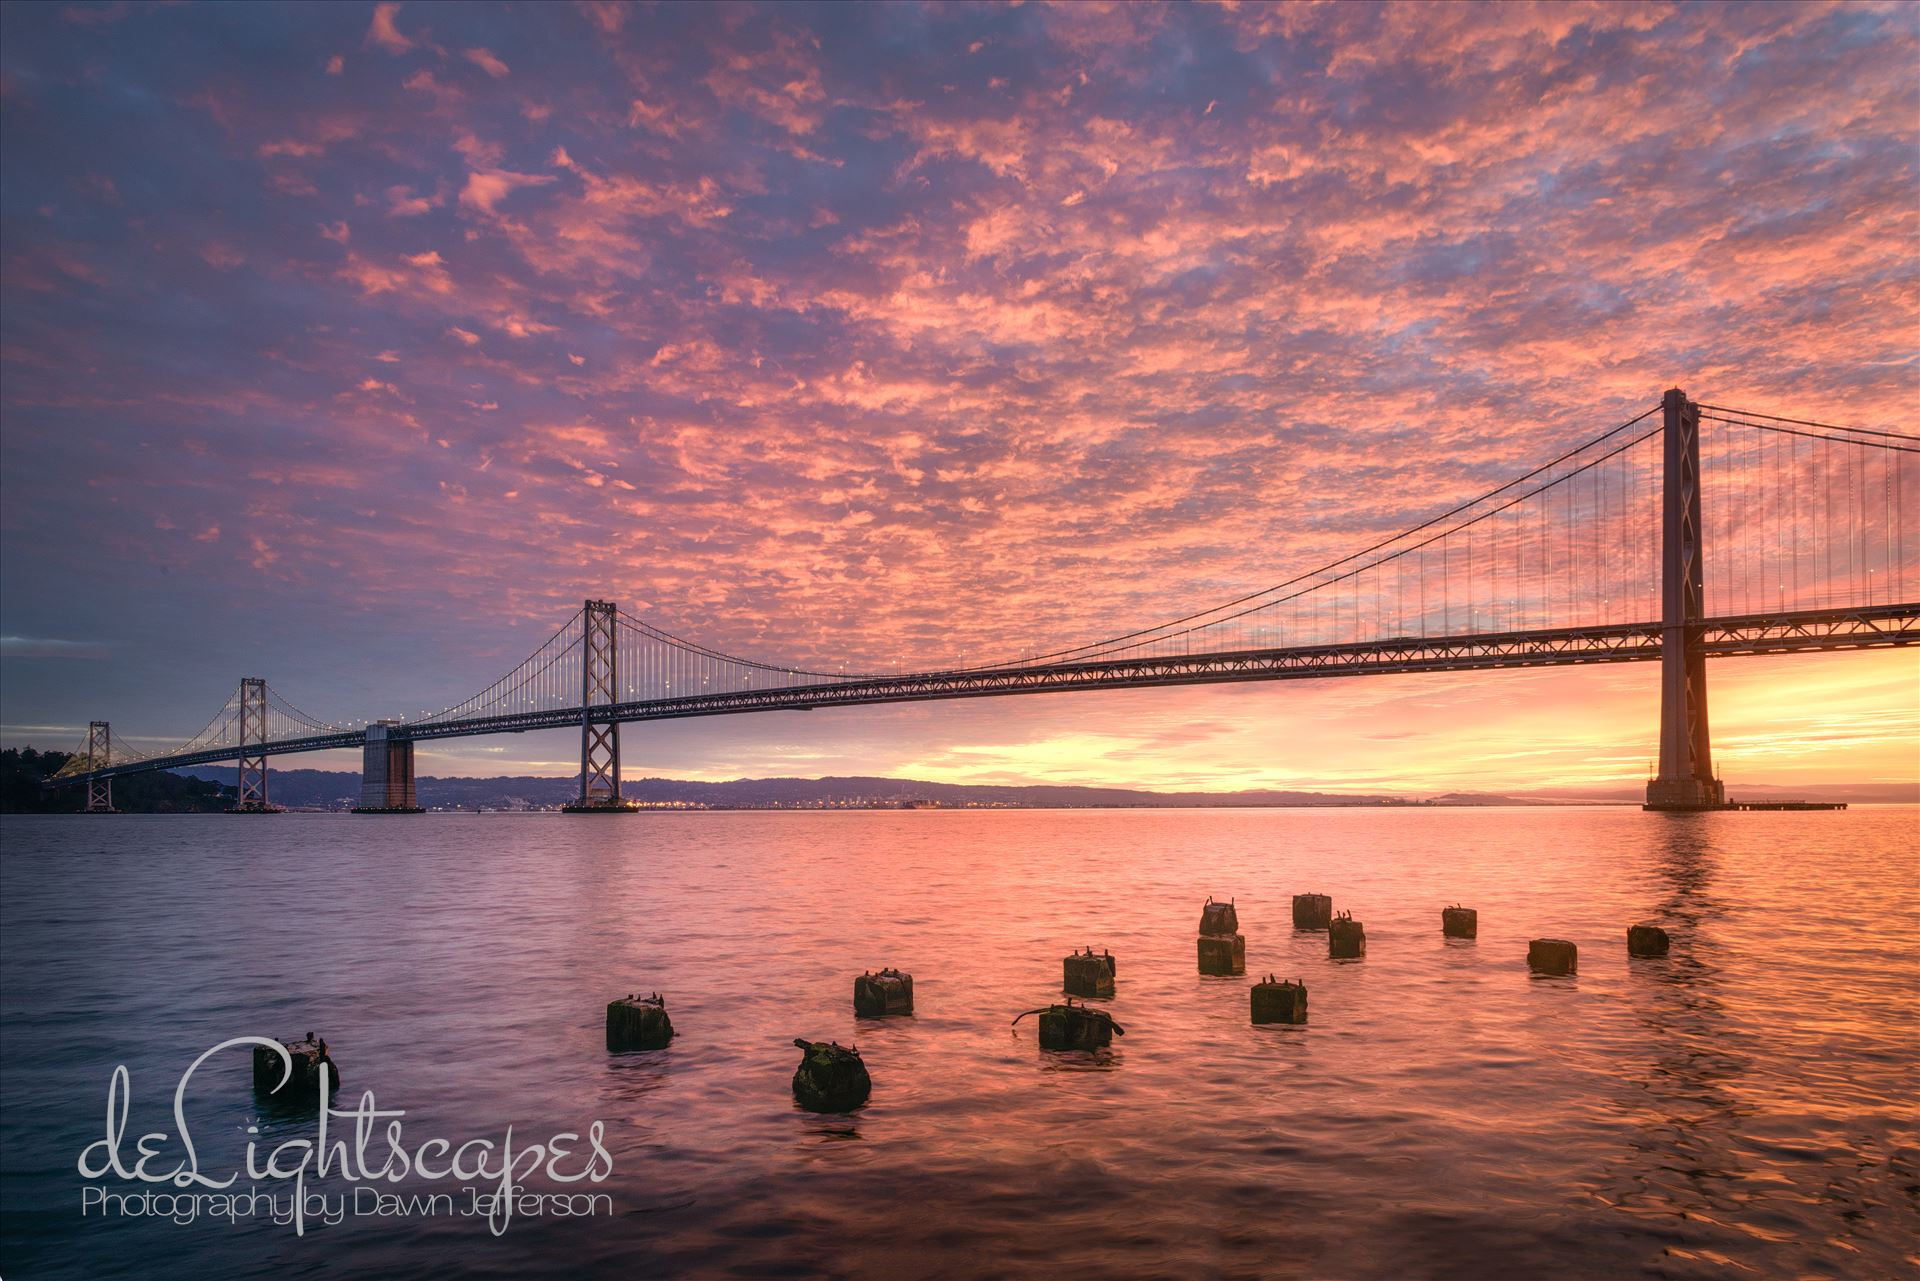 Cotton Candy Sunrise - A gorgeous pink sunrise at the San Francisco Bay Bridge by Dawn Jefferson